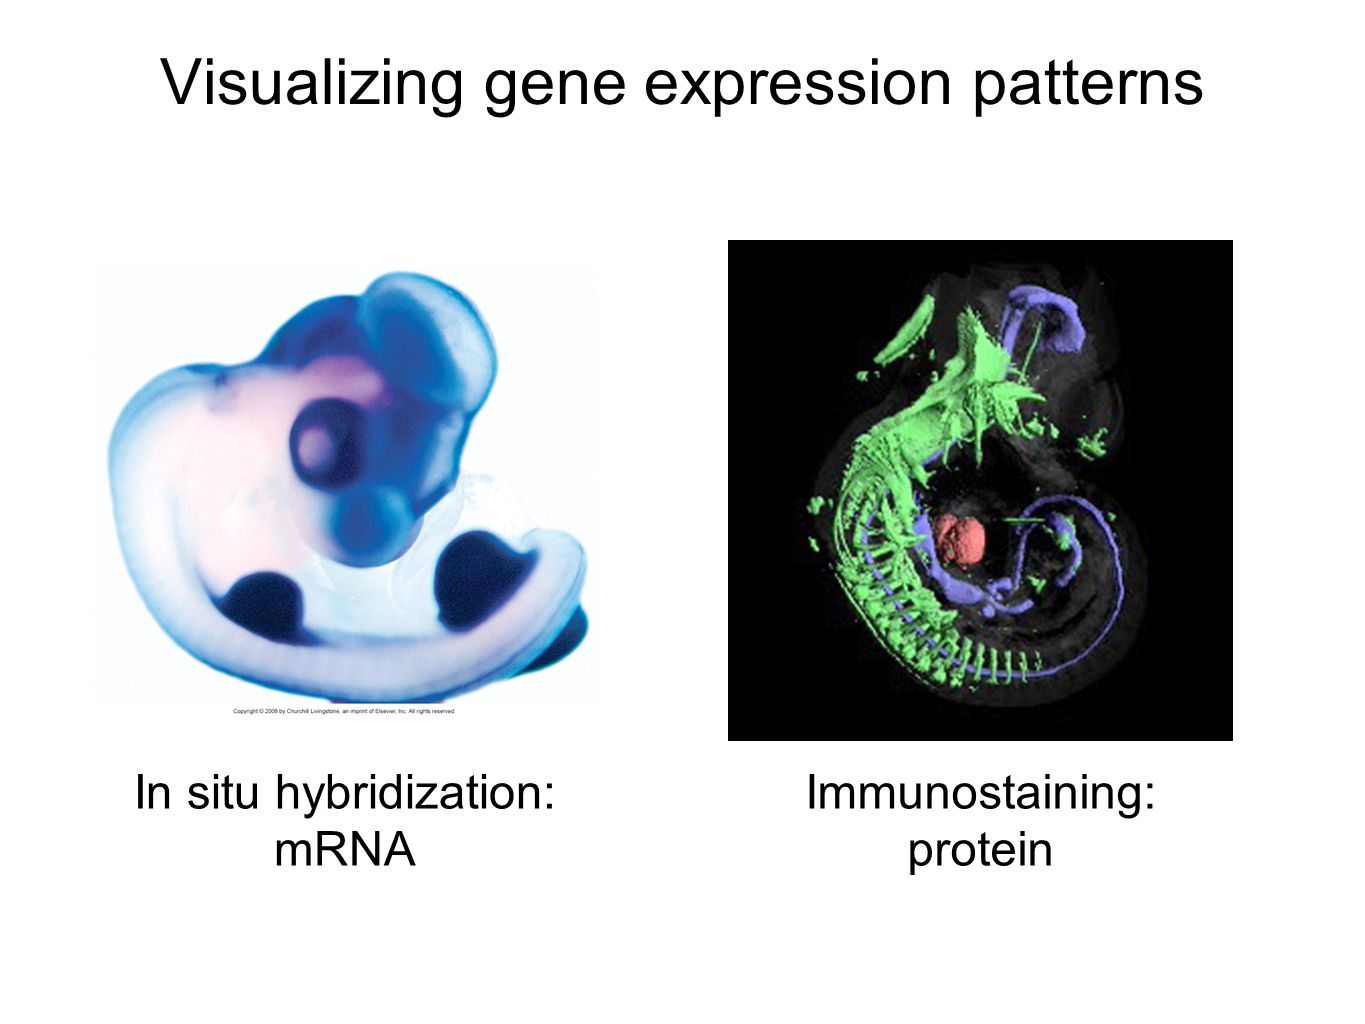 Visualizing gene expression patterns In situ hybridization: mRNA Immunostaining: protein